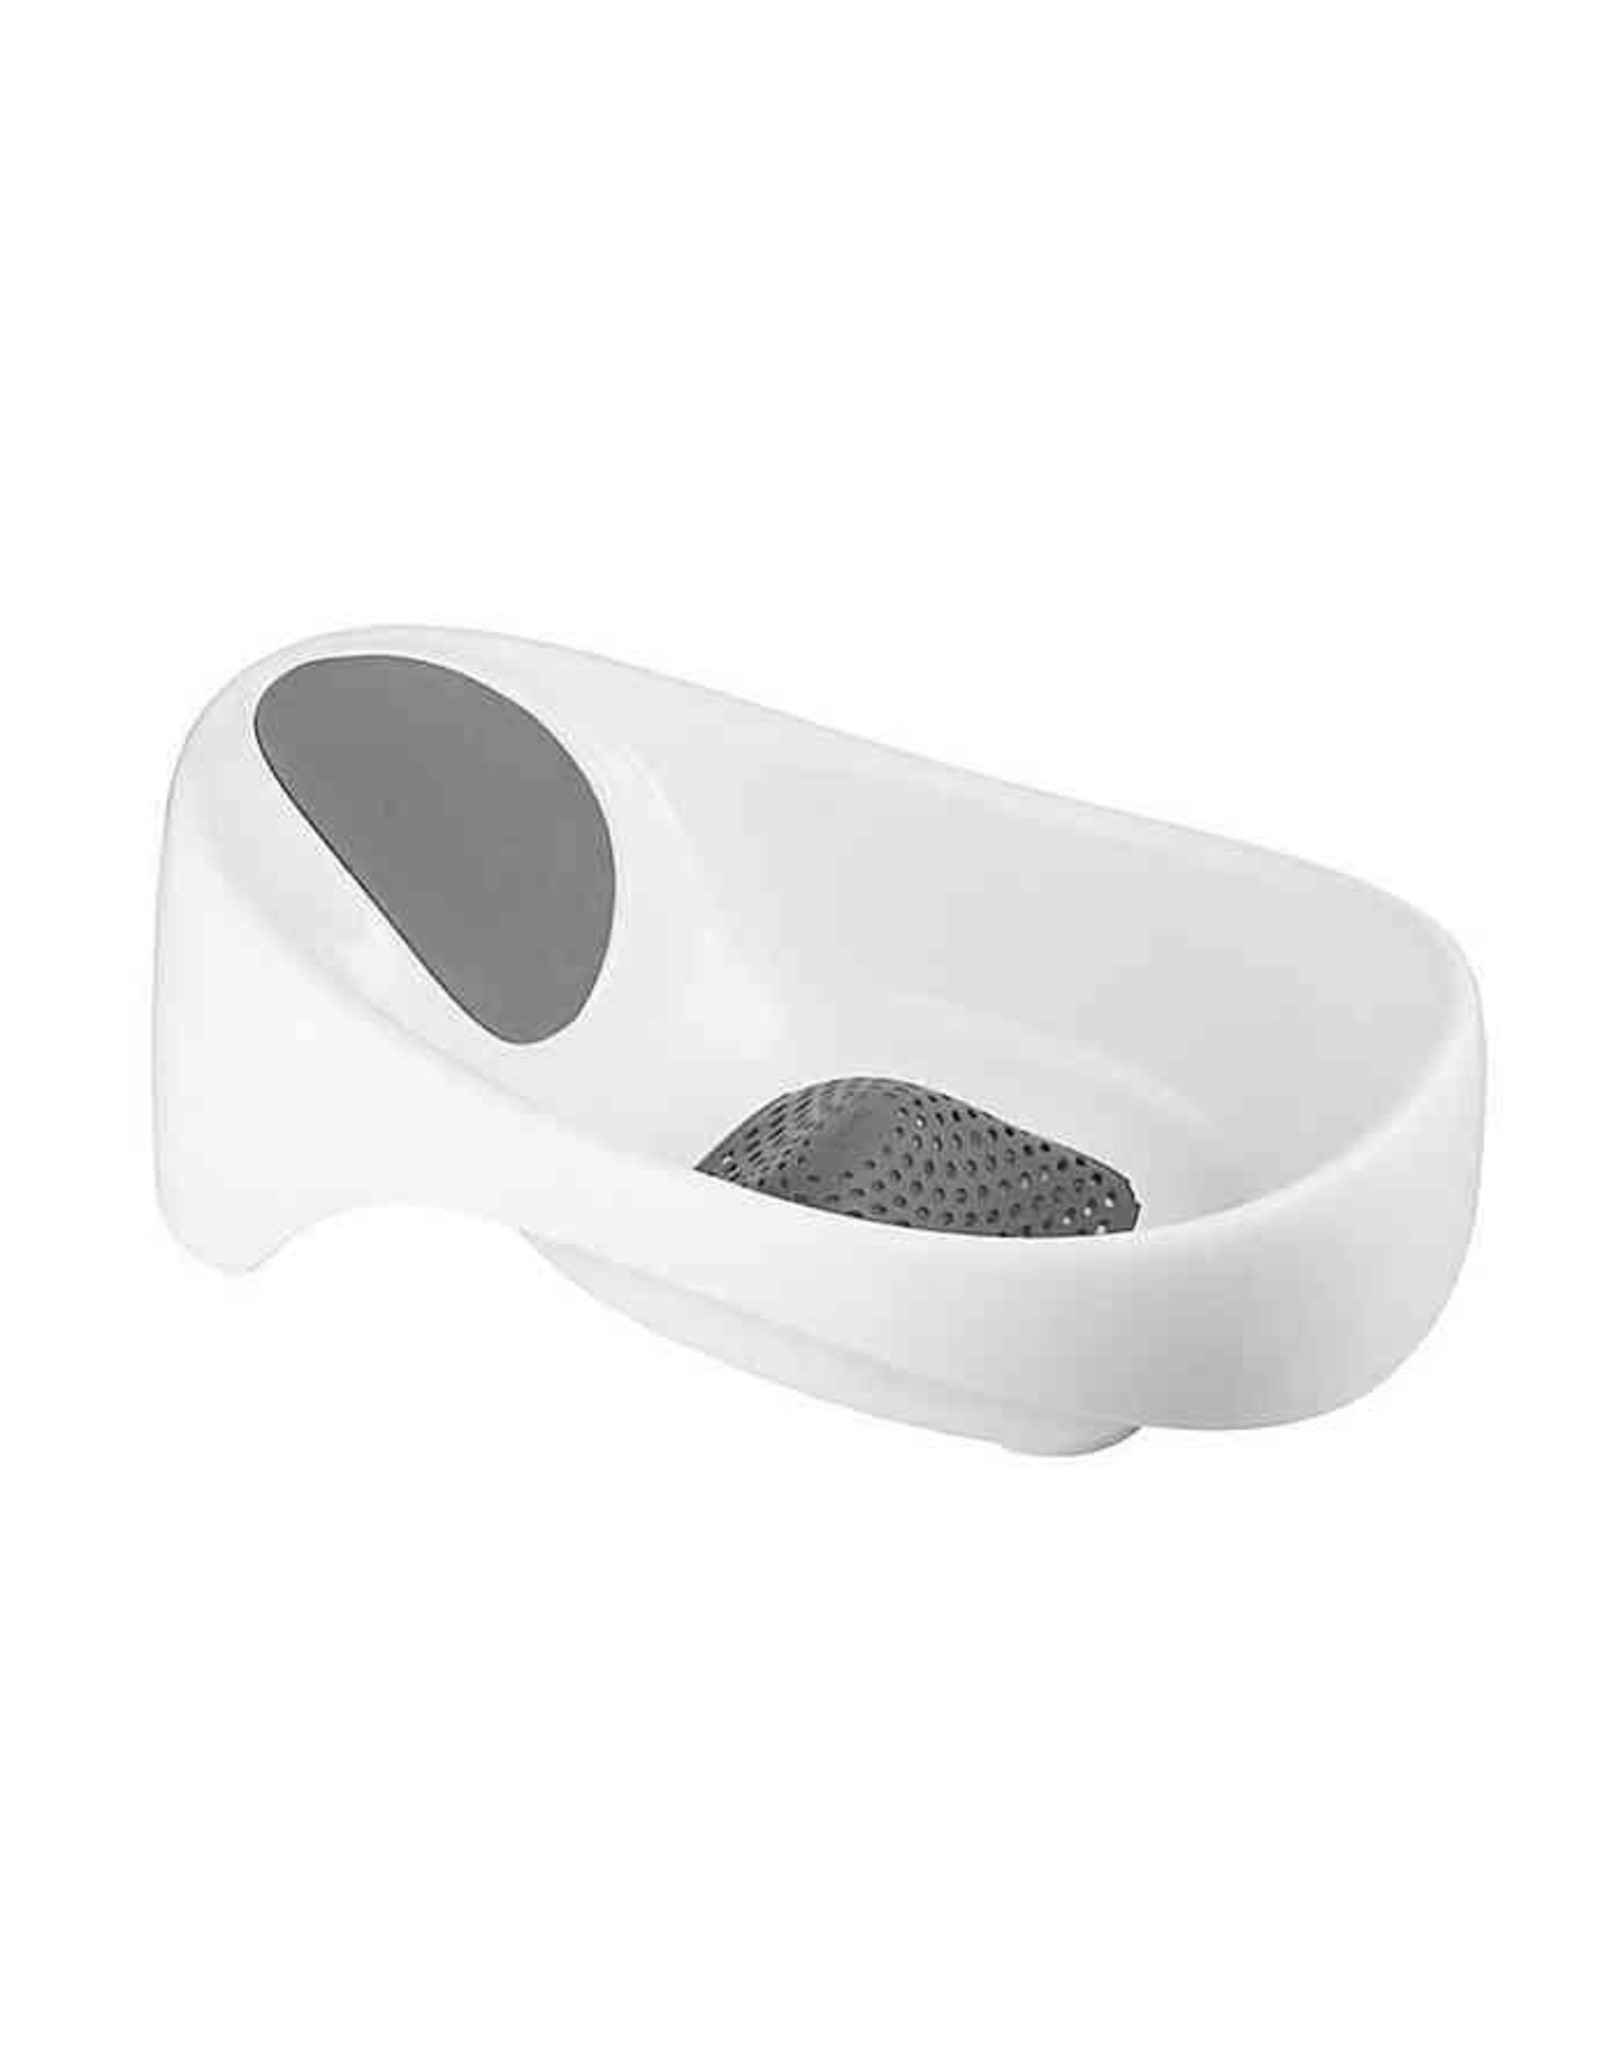 Boon Soak 3-Stage Bathtub, Grey/White